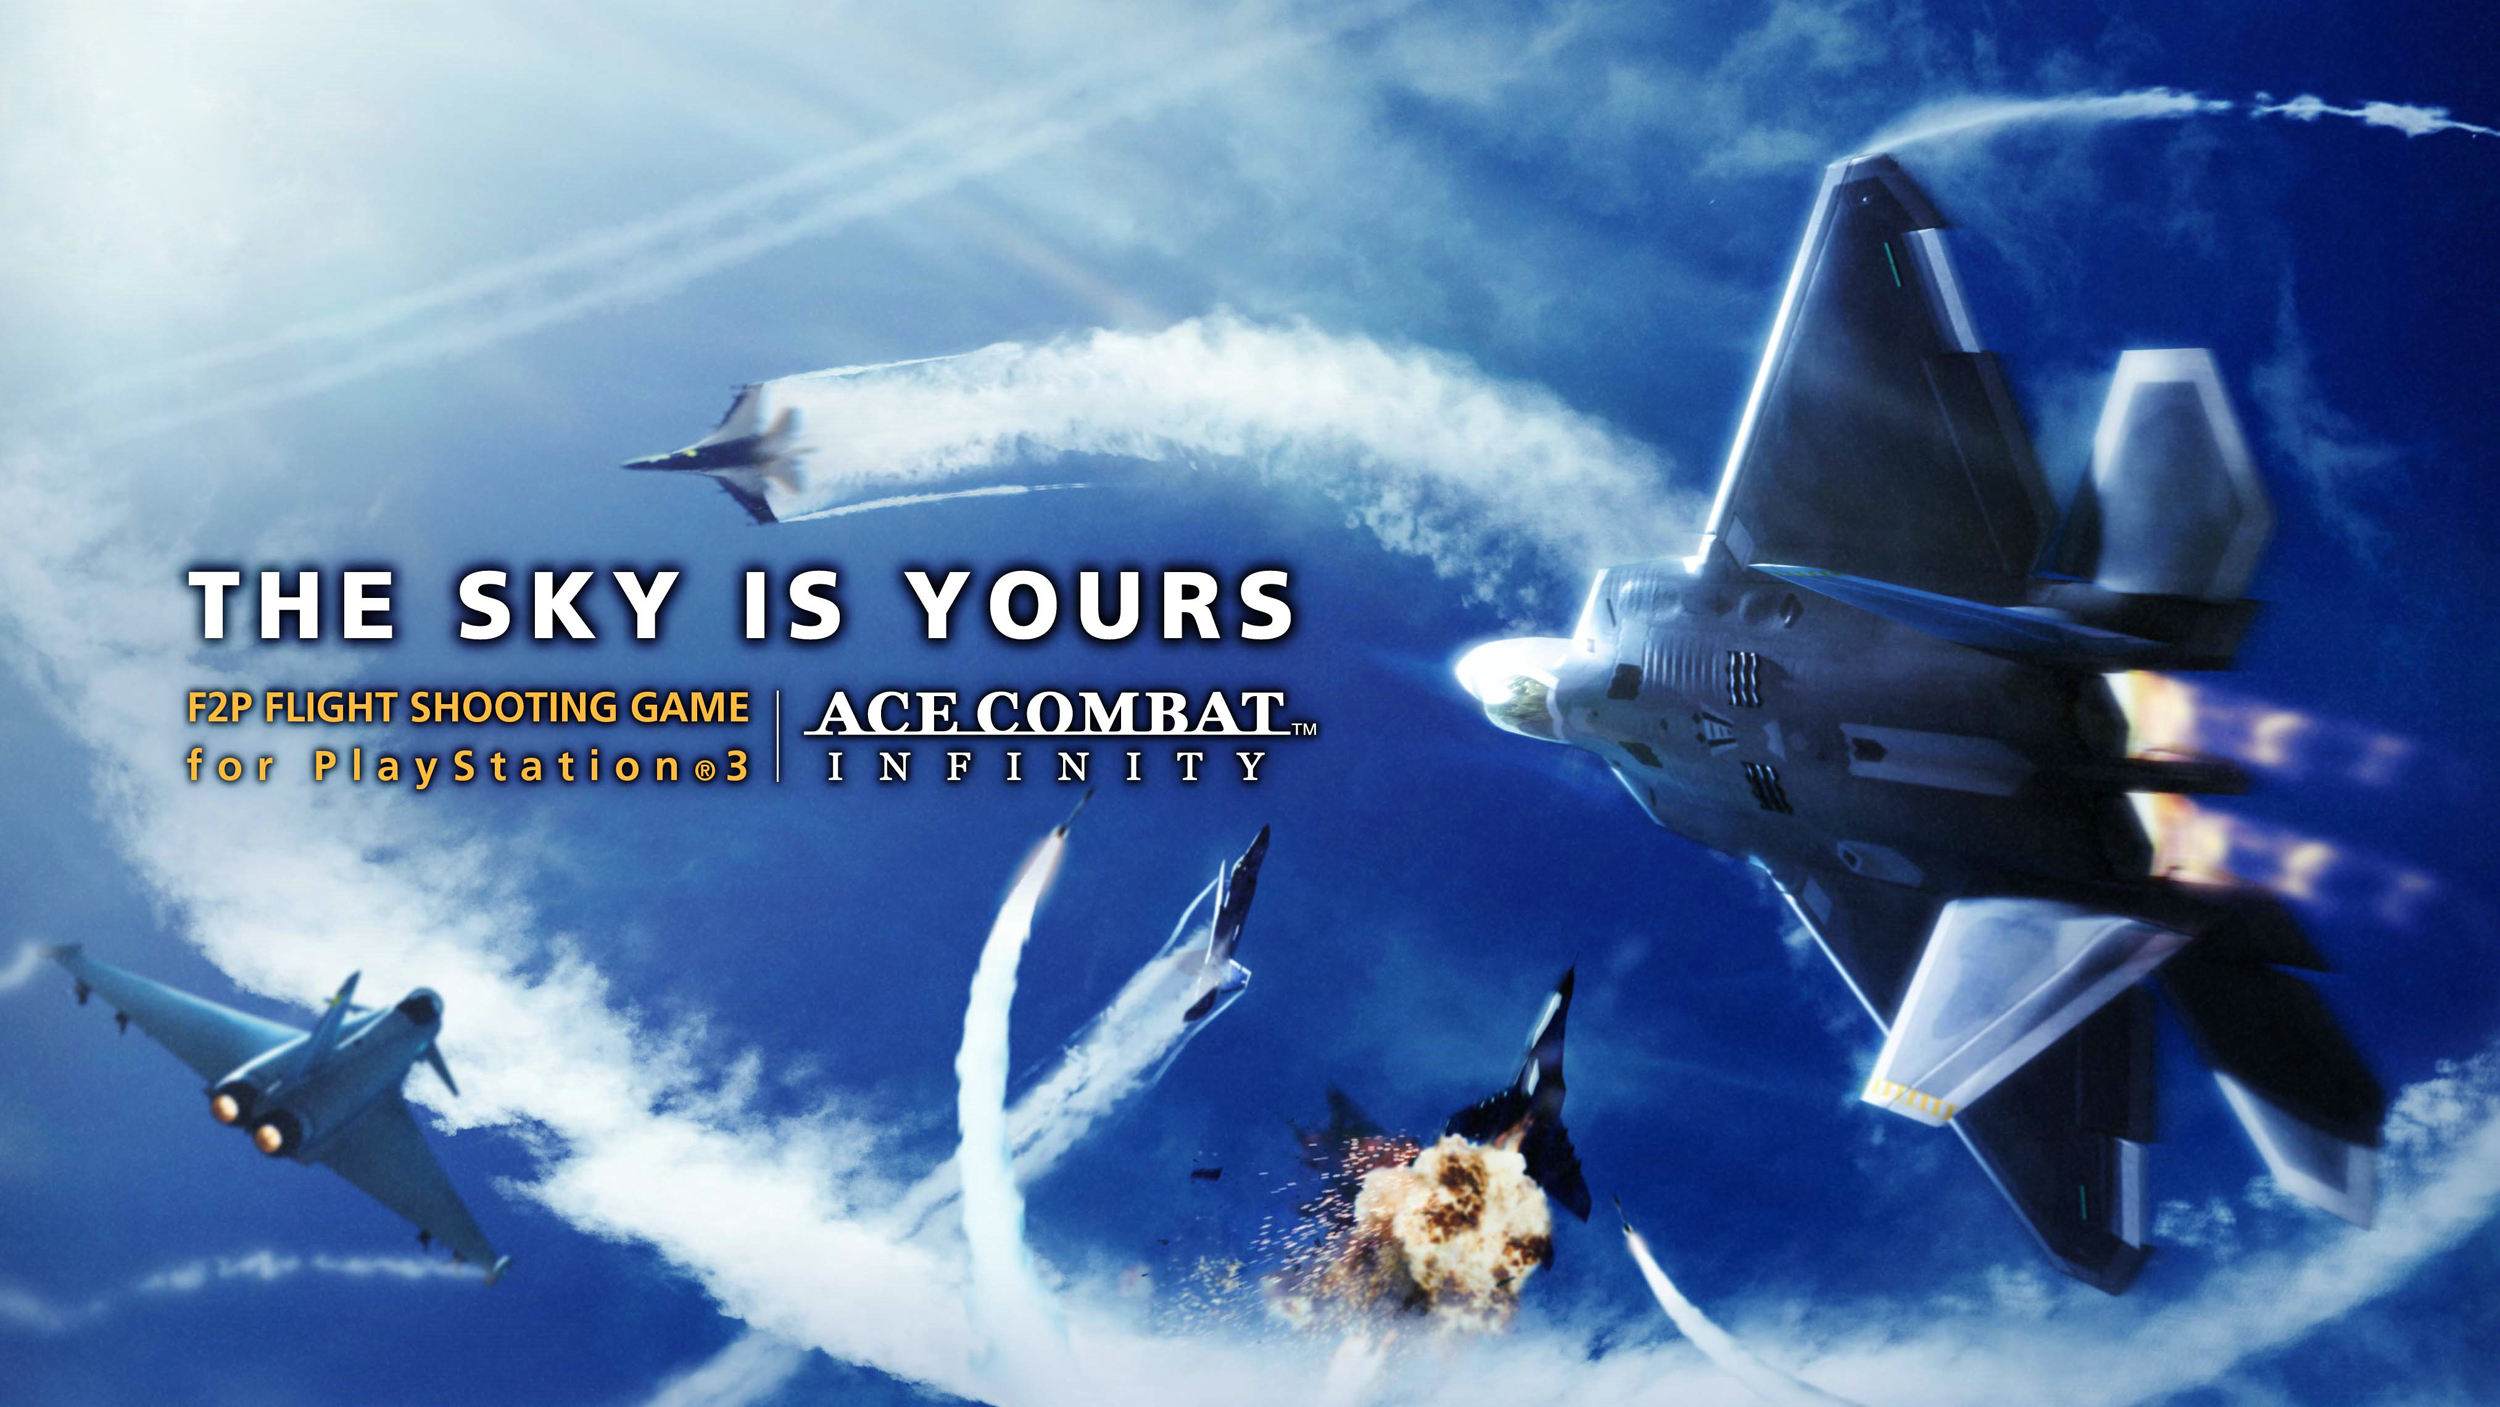 ace-combat-infinity-key-art